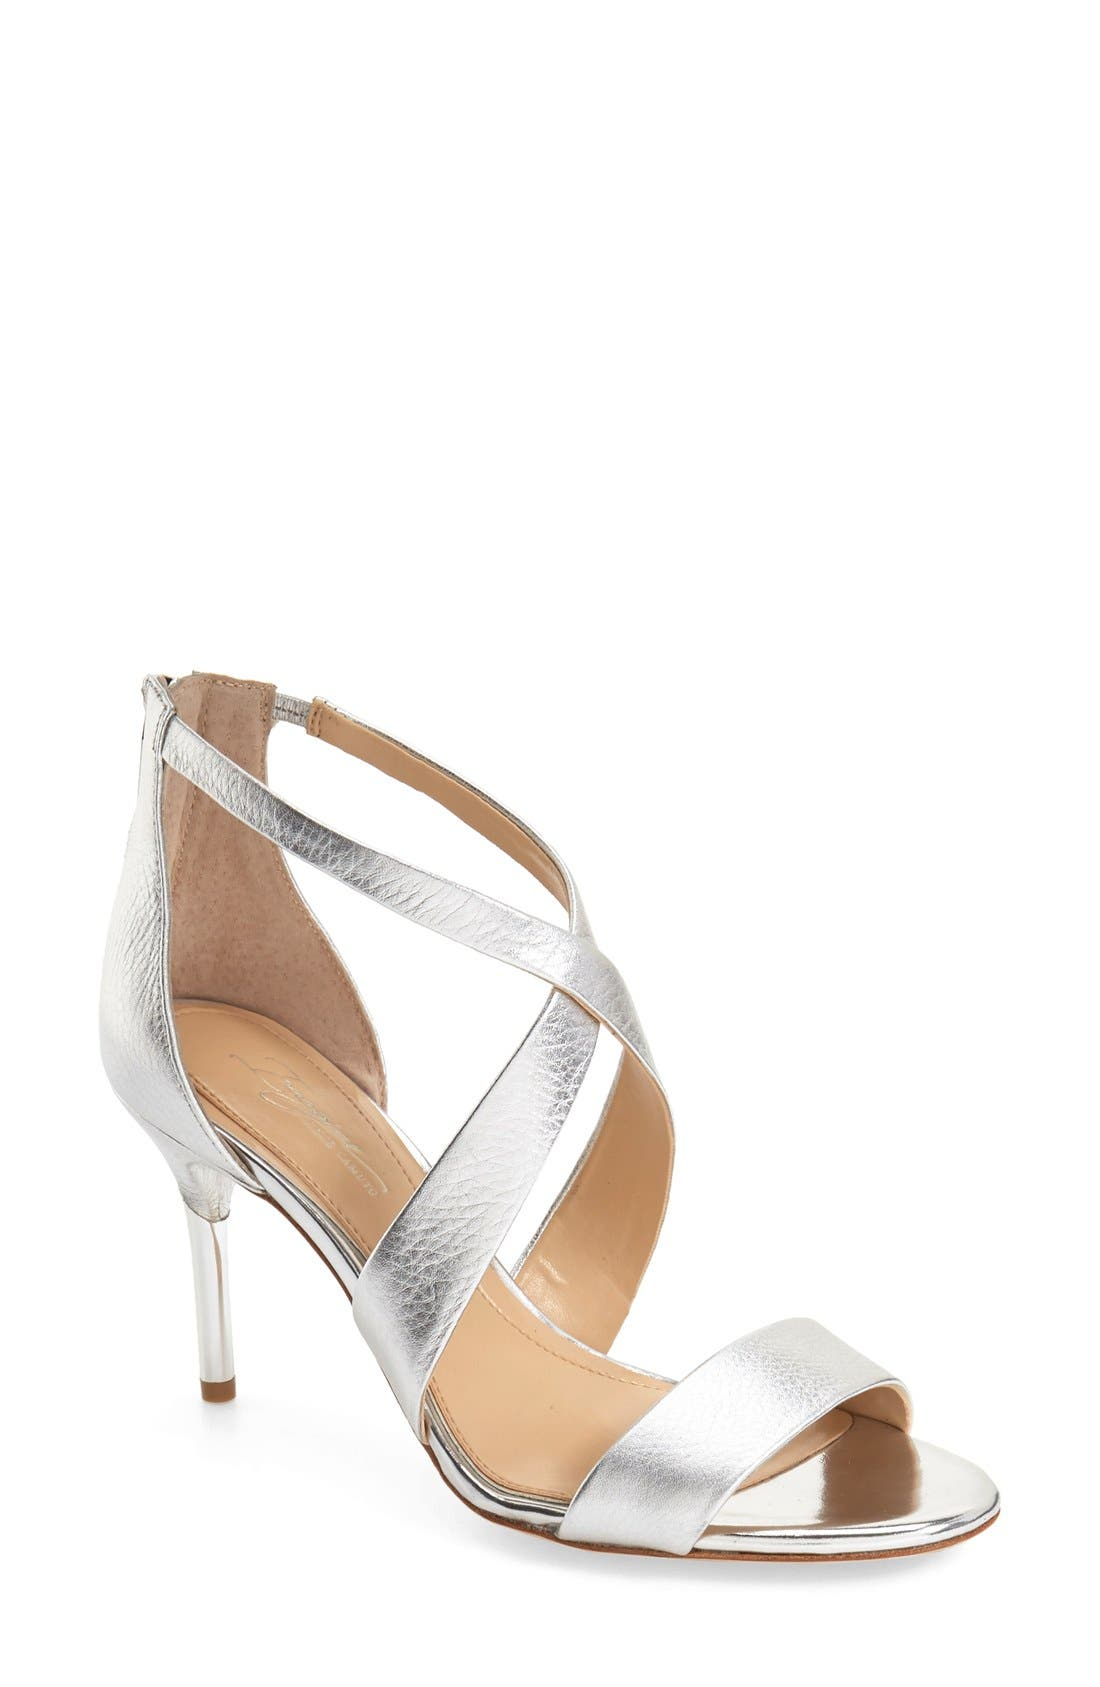 'Pascal 2' Strappy Evening Sandal,                             Main thumbnail 1, color,                             PLATINUM LEATHER